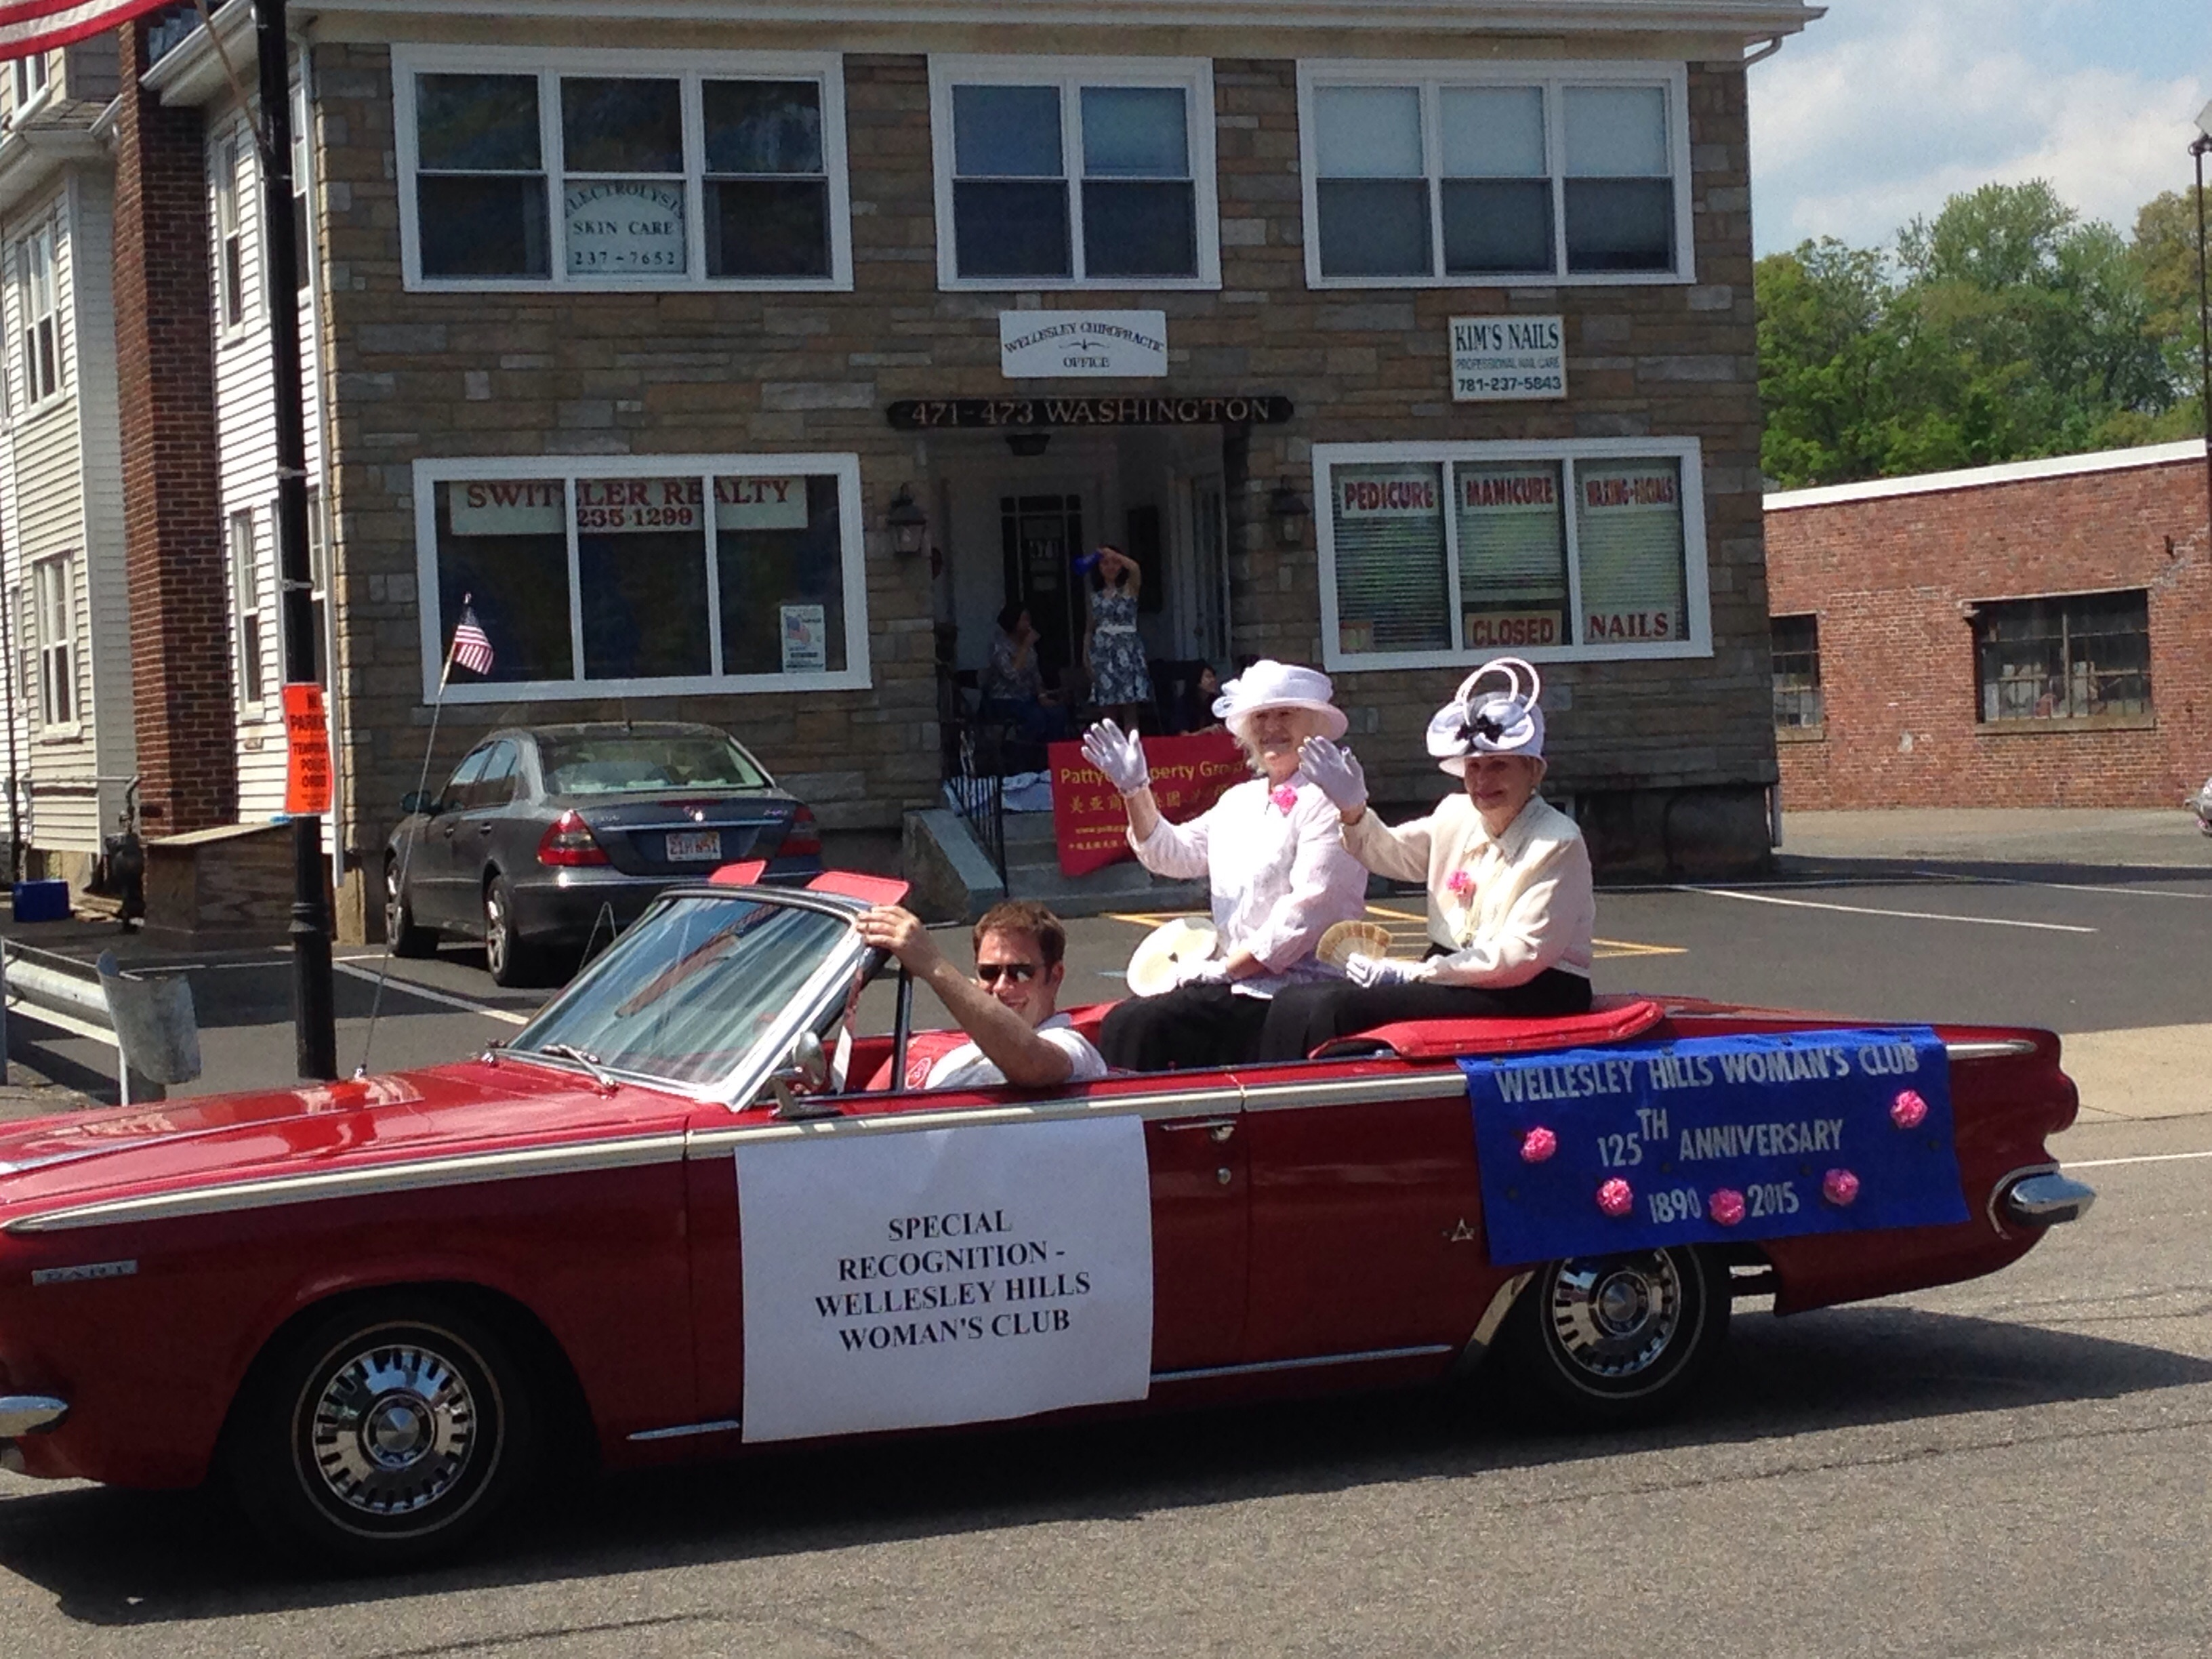 wellesley hills woman's club parade